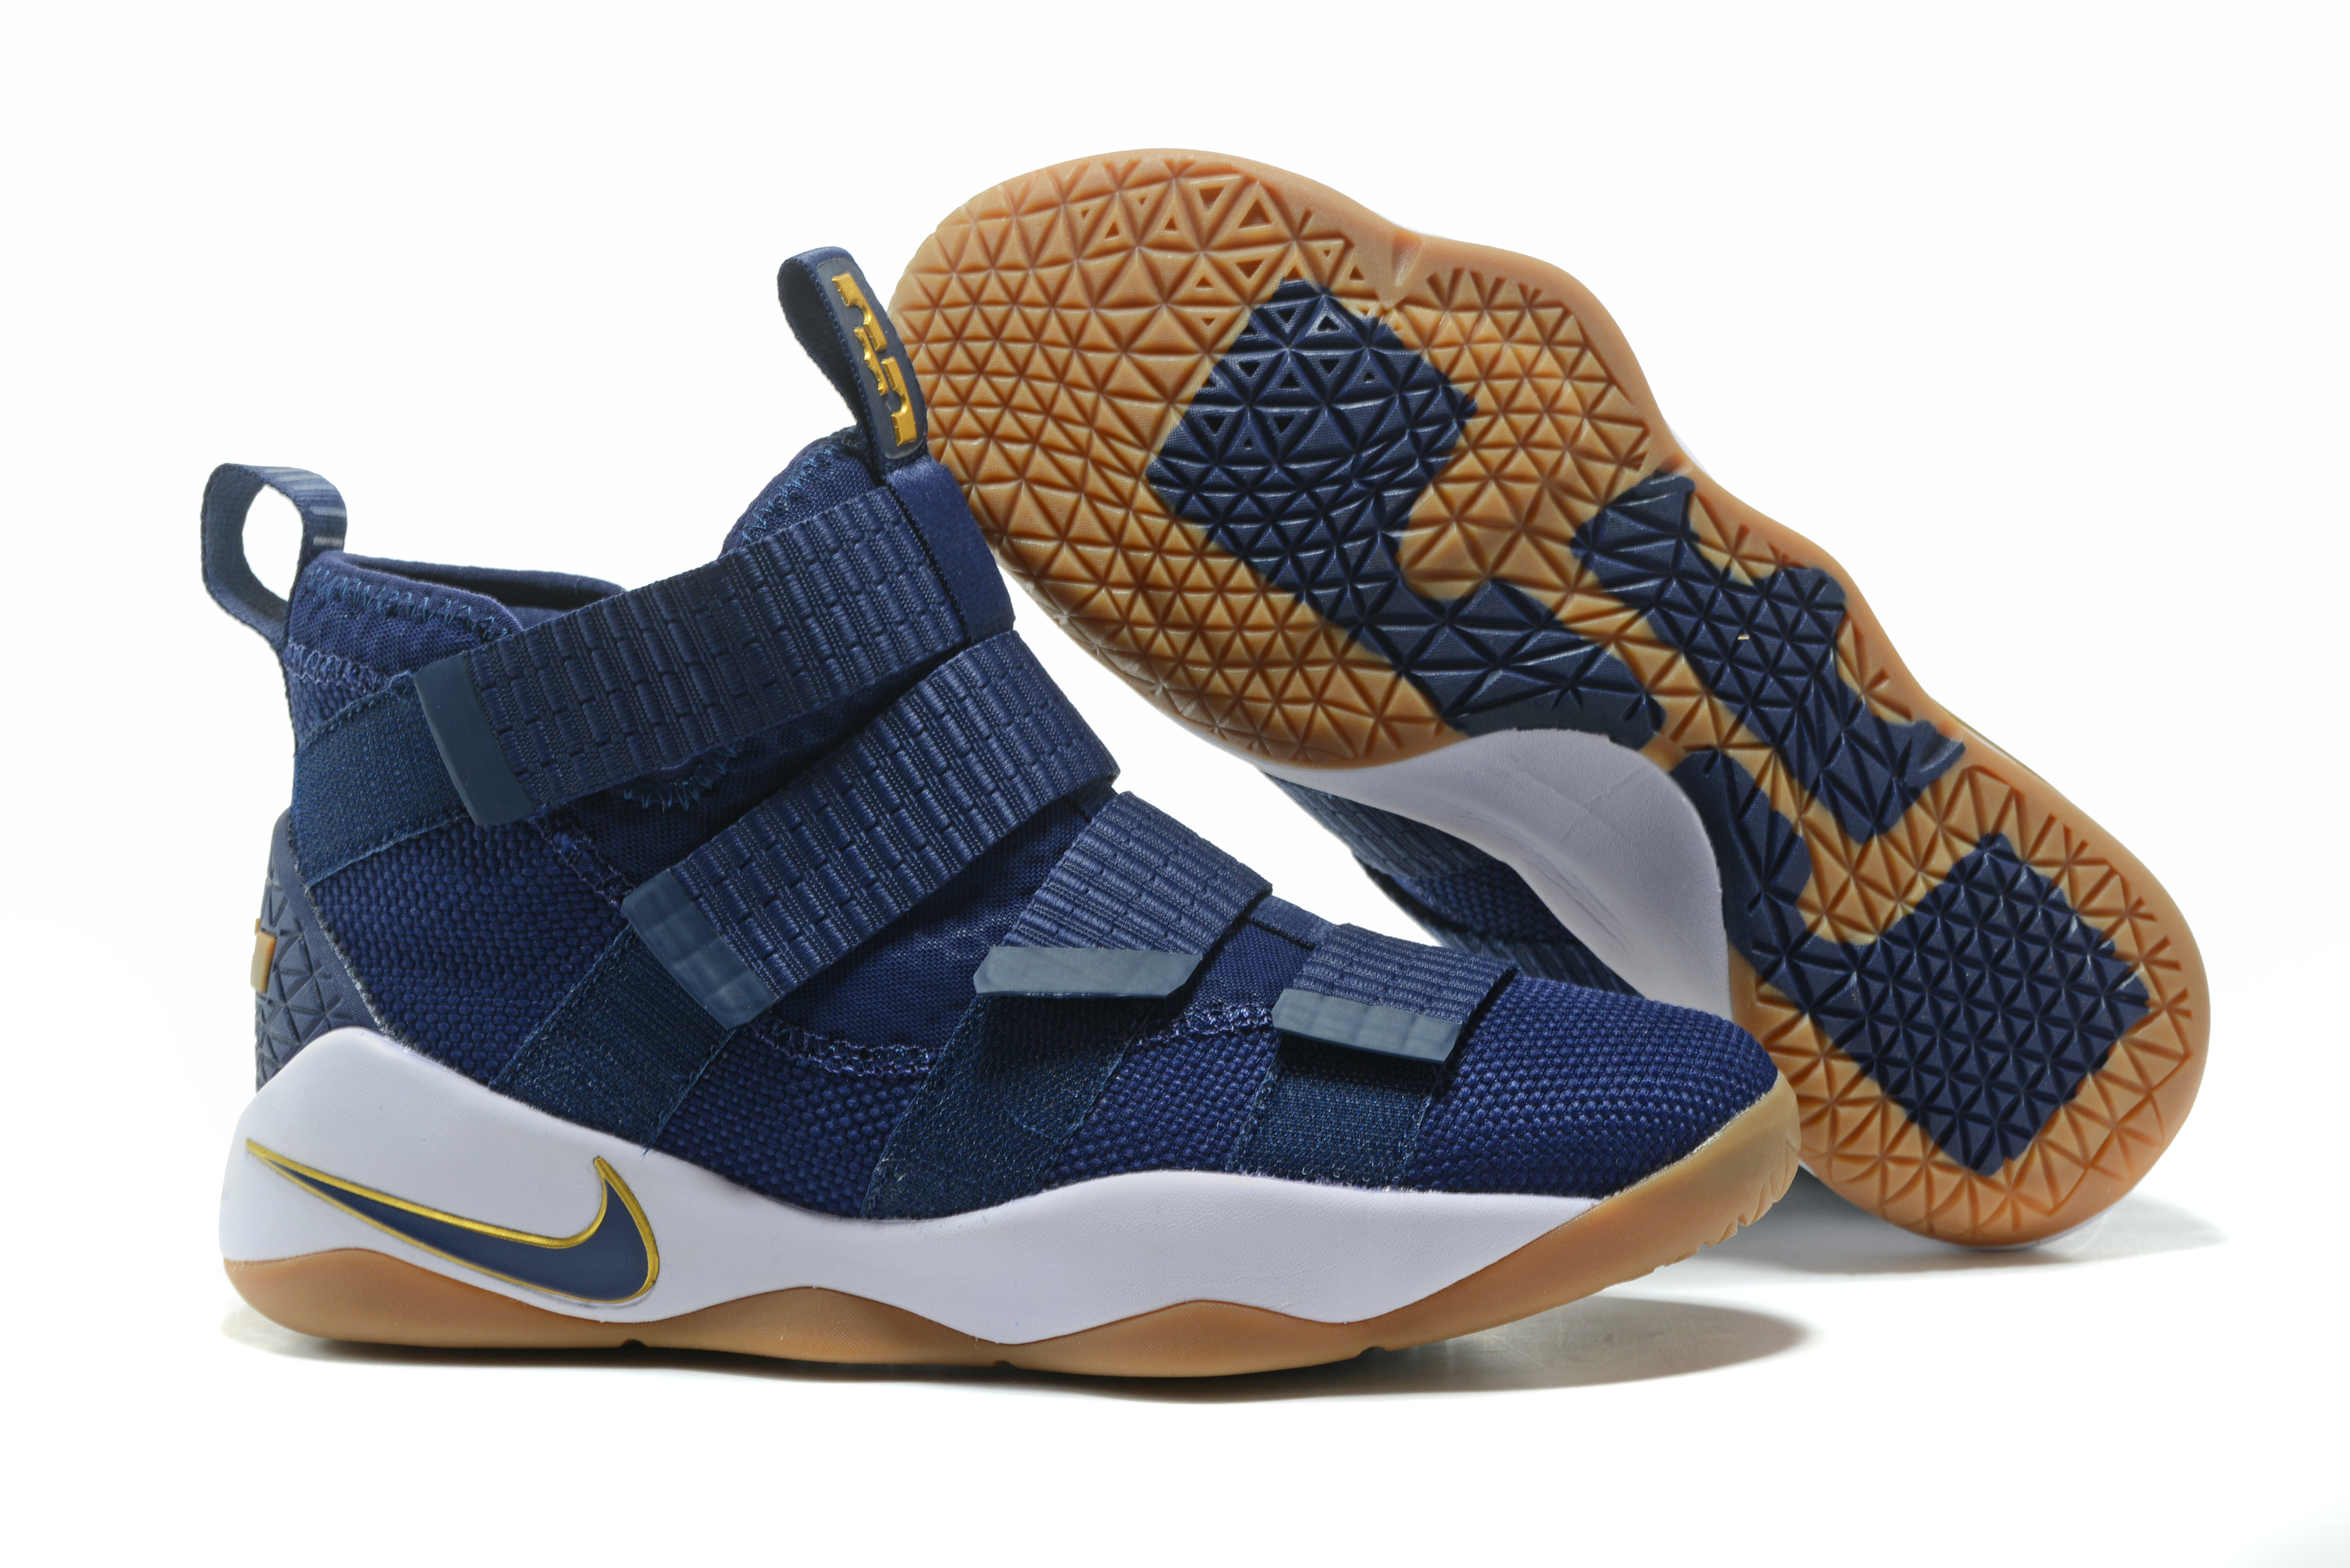 New Nike Lebron Soldier 11 Royal Blue Gum Shoes